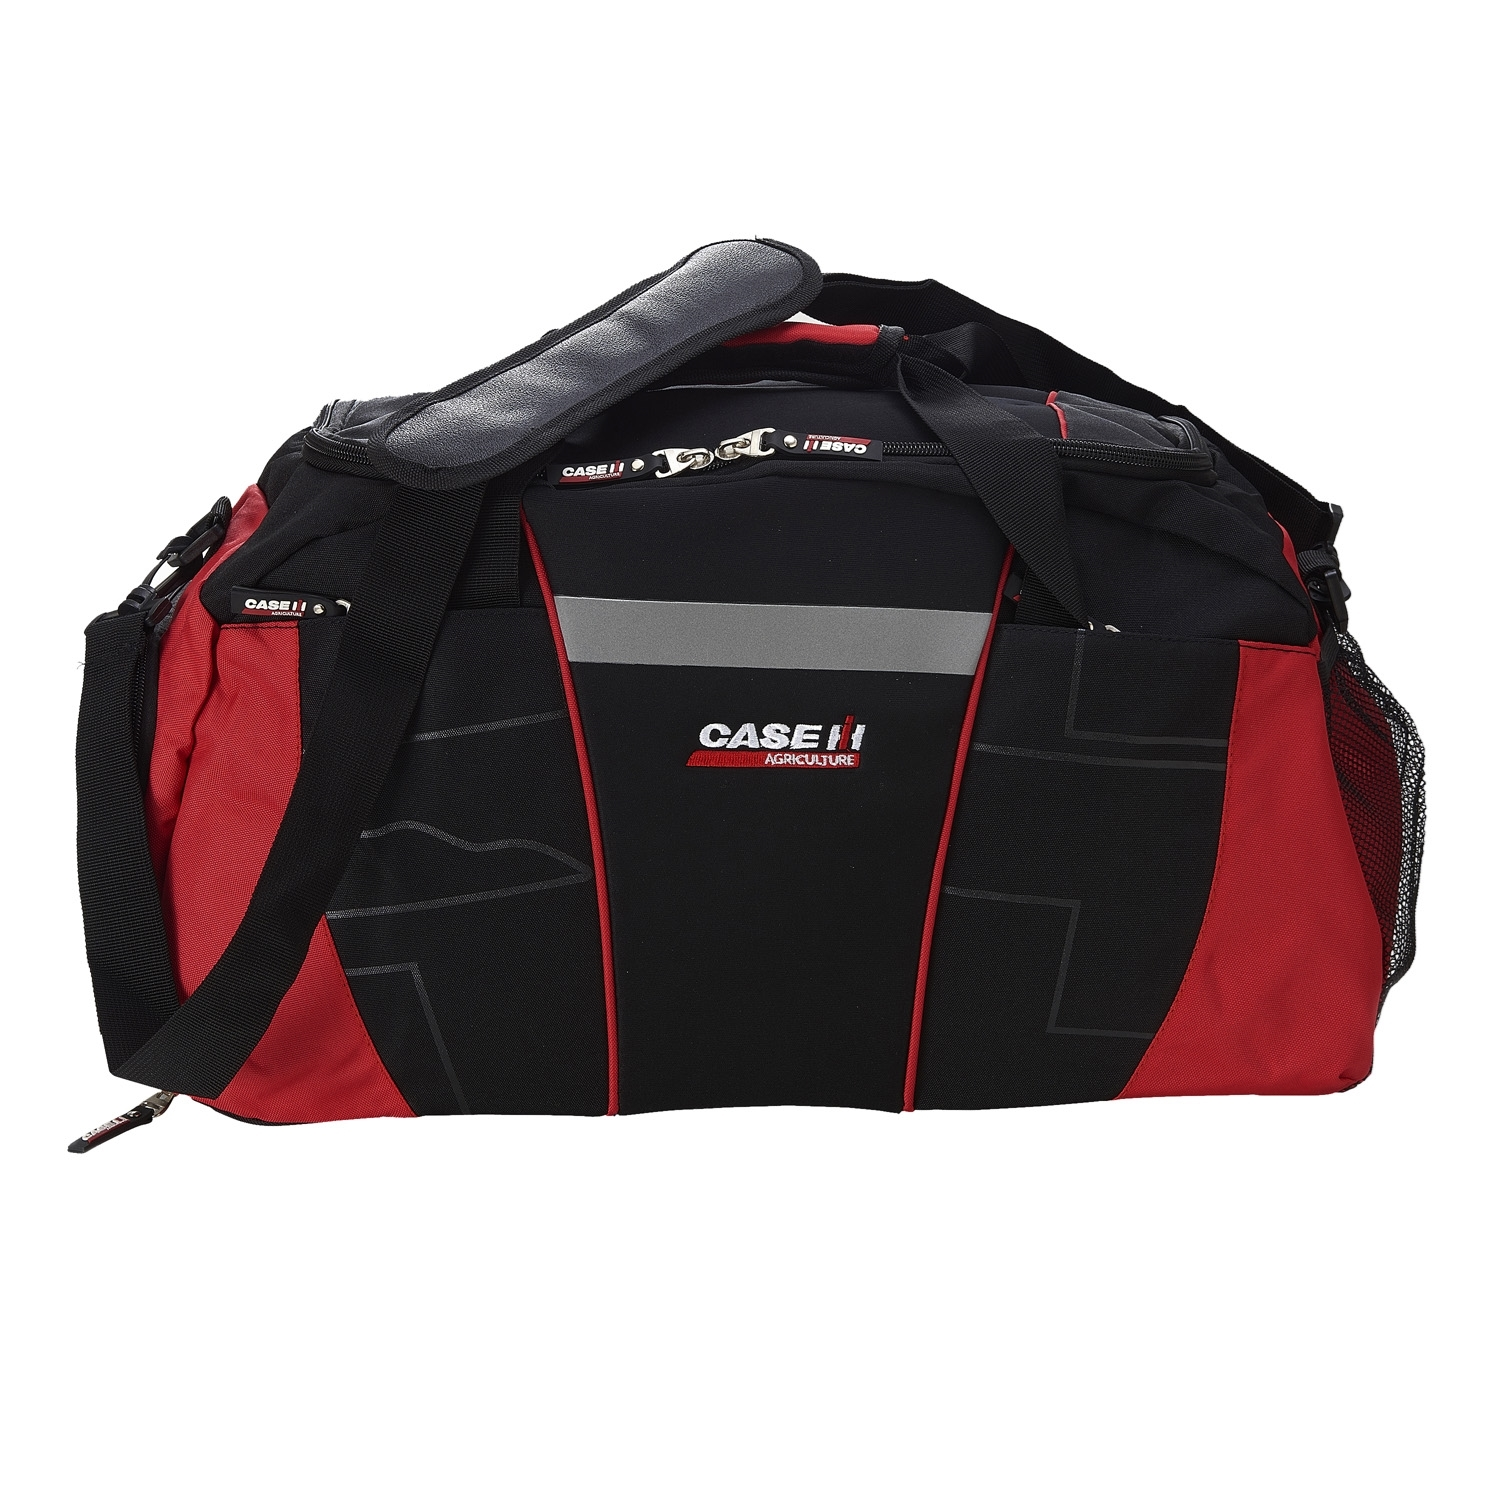 case ih sports bag 53 x 30 x 30 cm. Black Bedroom Furniture Sets. Home Design Ideas